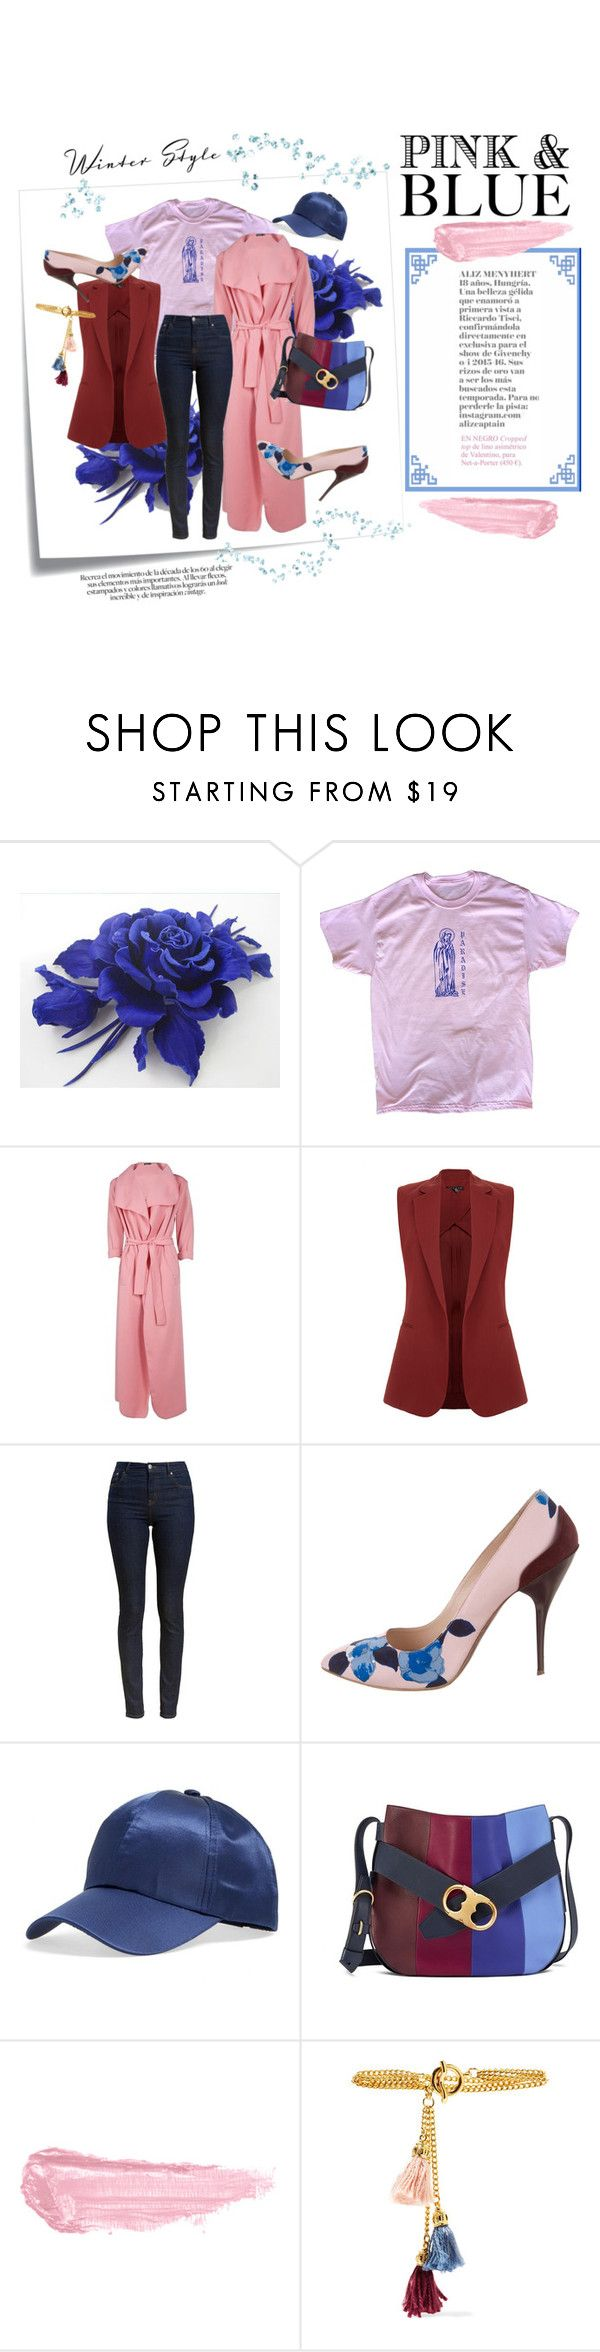 """""""Color Challenge: Pink & Blue."""" by meechsmommy ❤ liked on Polyvore featuring Post-It, Boohoo, Theory, Barbour, Oscar de la Renta, Fantasia, Tory Burch, By Terry and Ben-Amun"""